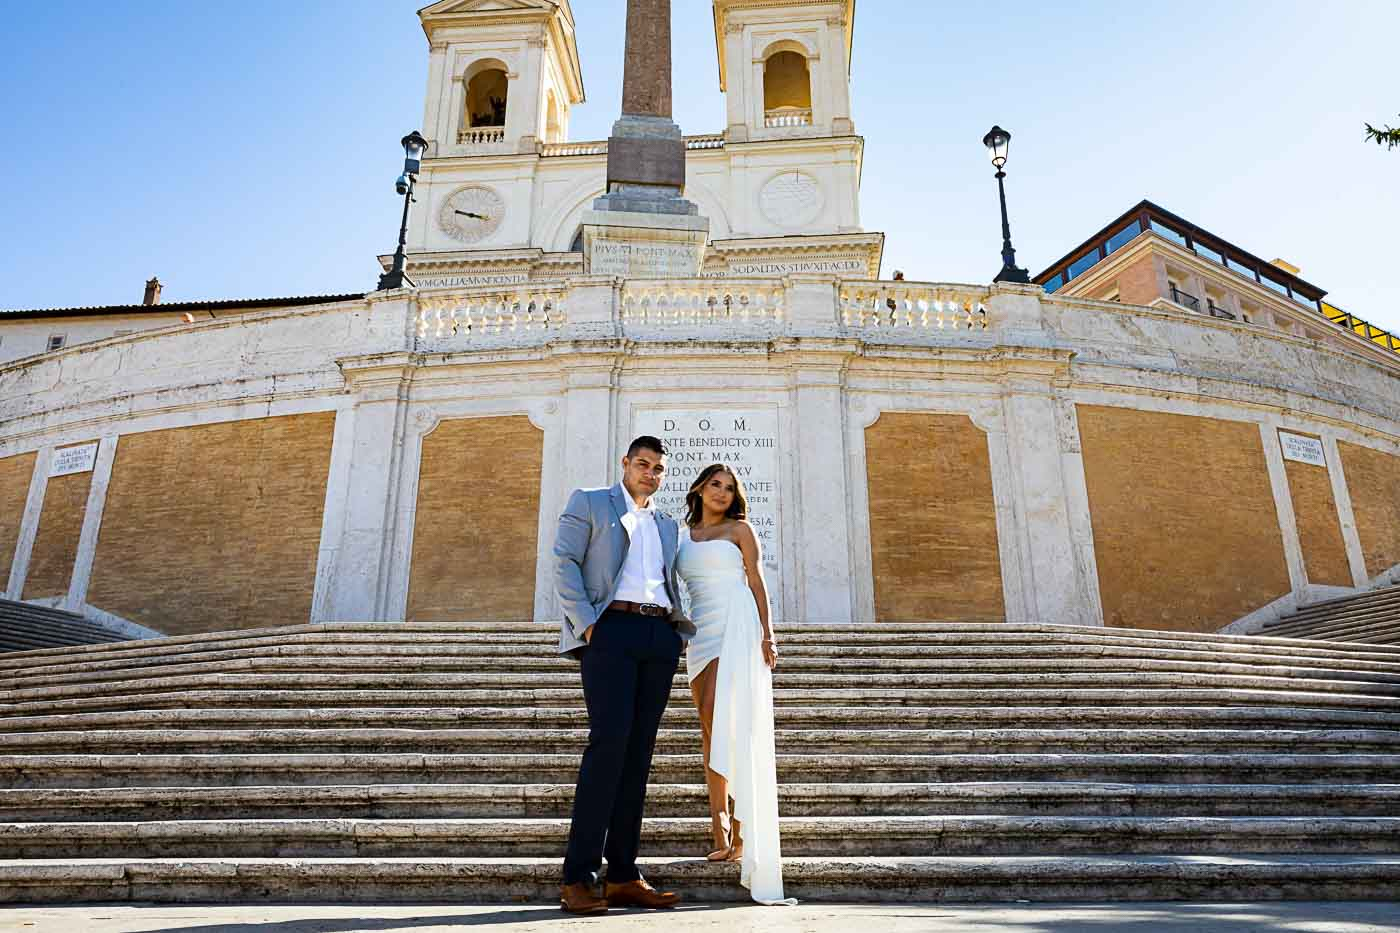 Portrait picture taken on the steps of the Spanish steps